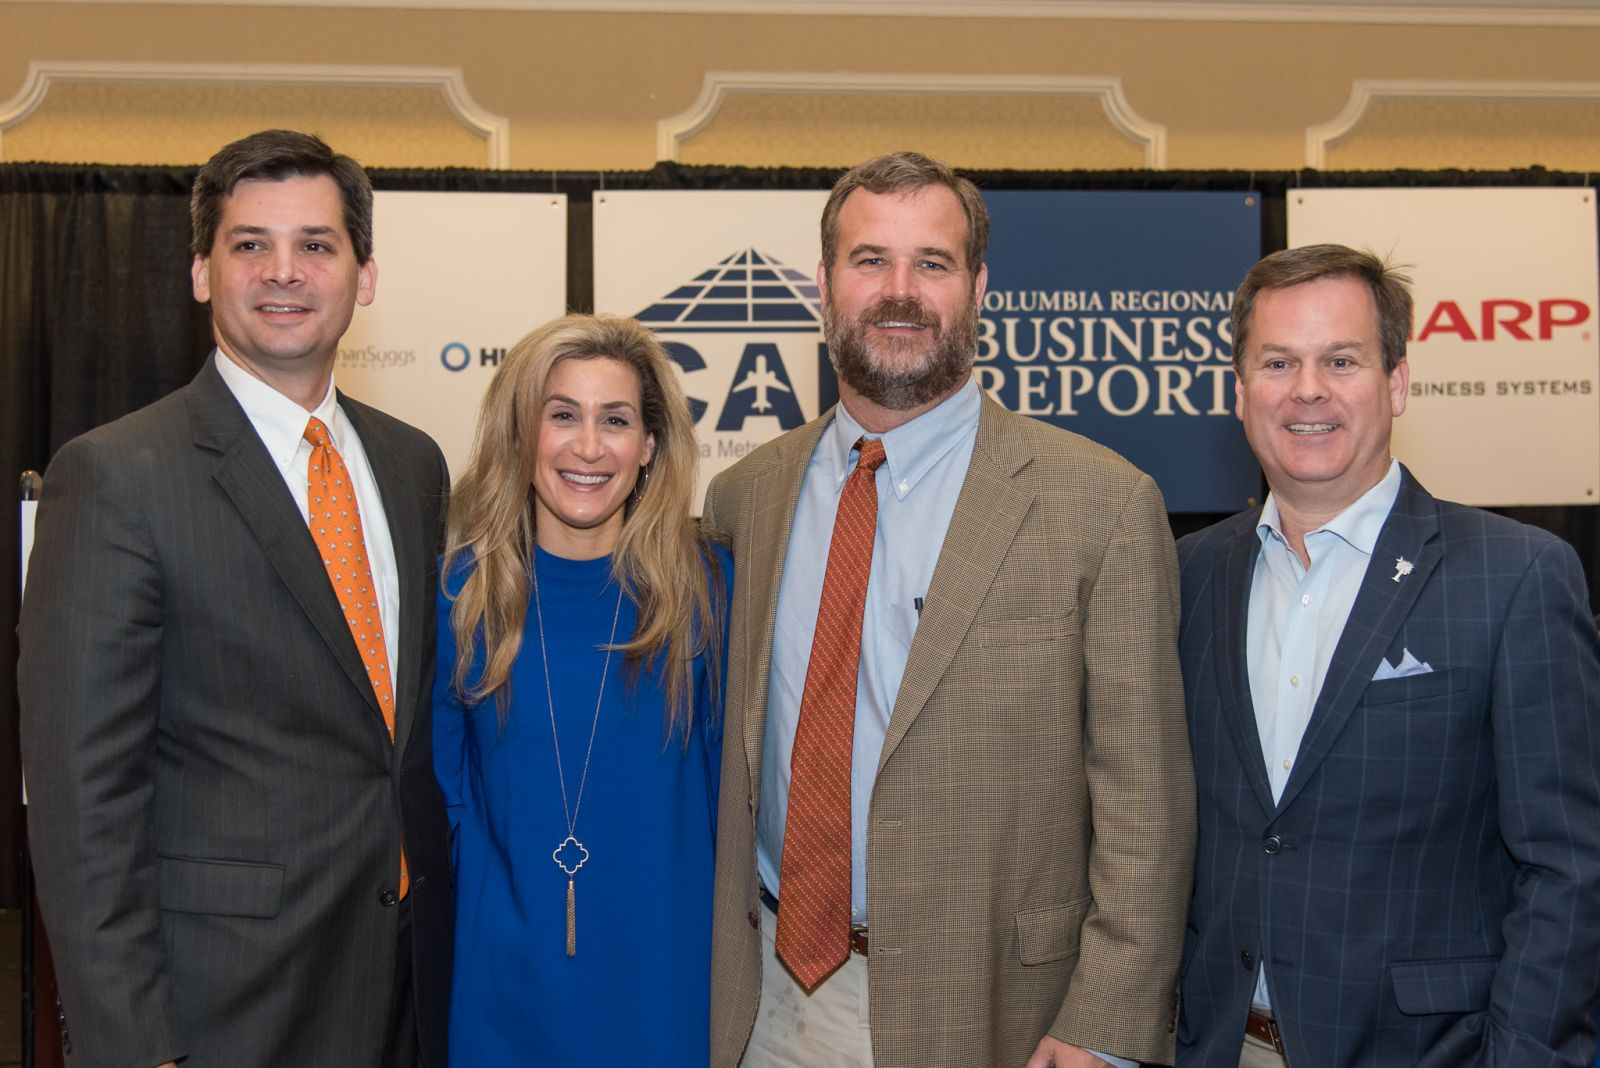 Sen. Shane Massey (from left) and Reps. Beth Bernstein, Kirkman Finlay and Nathan Ballentine addressed V.C. Summer and education questions at Thursday's Power Breakfast Series event. (Photo/Kathy Allen)